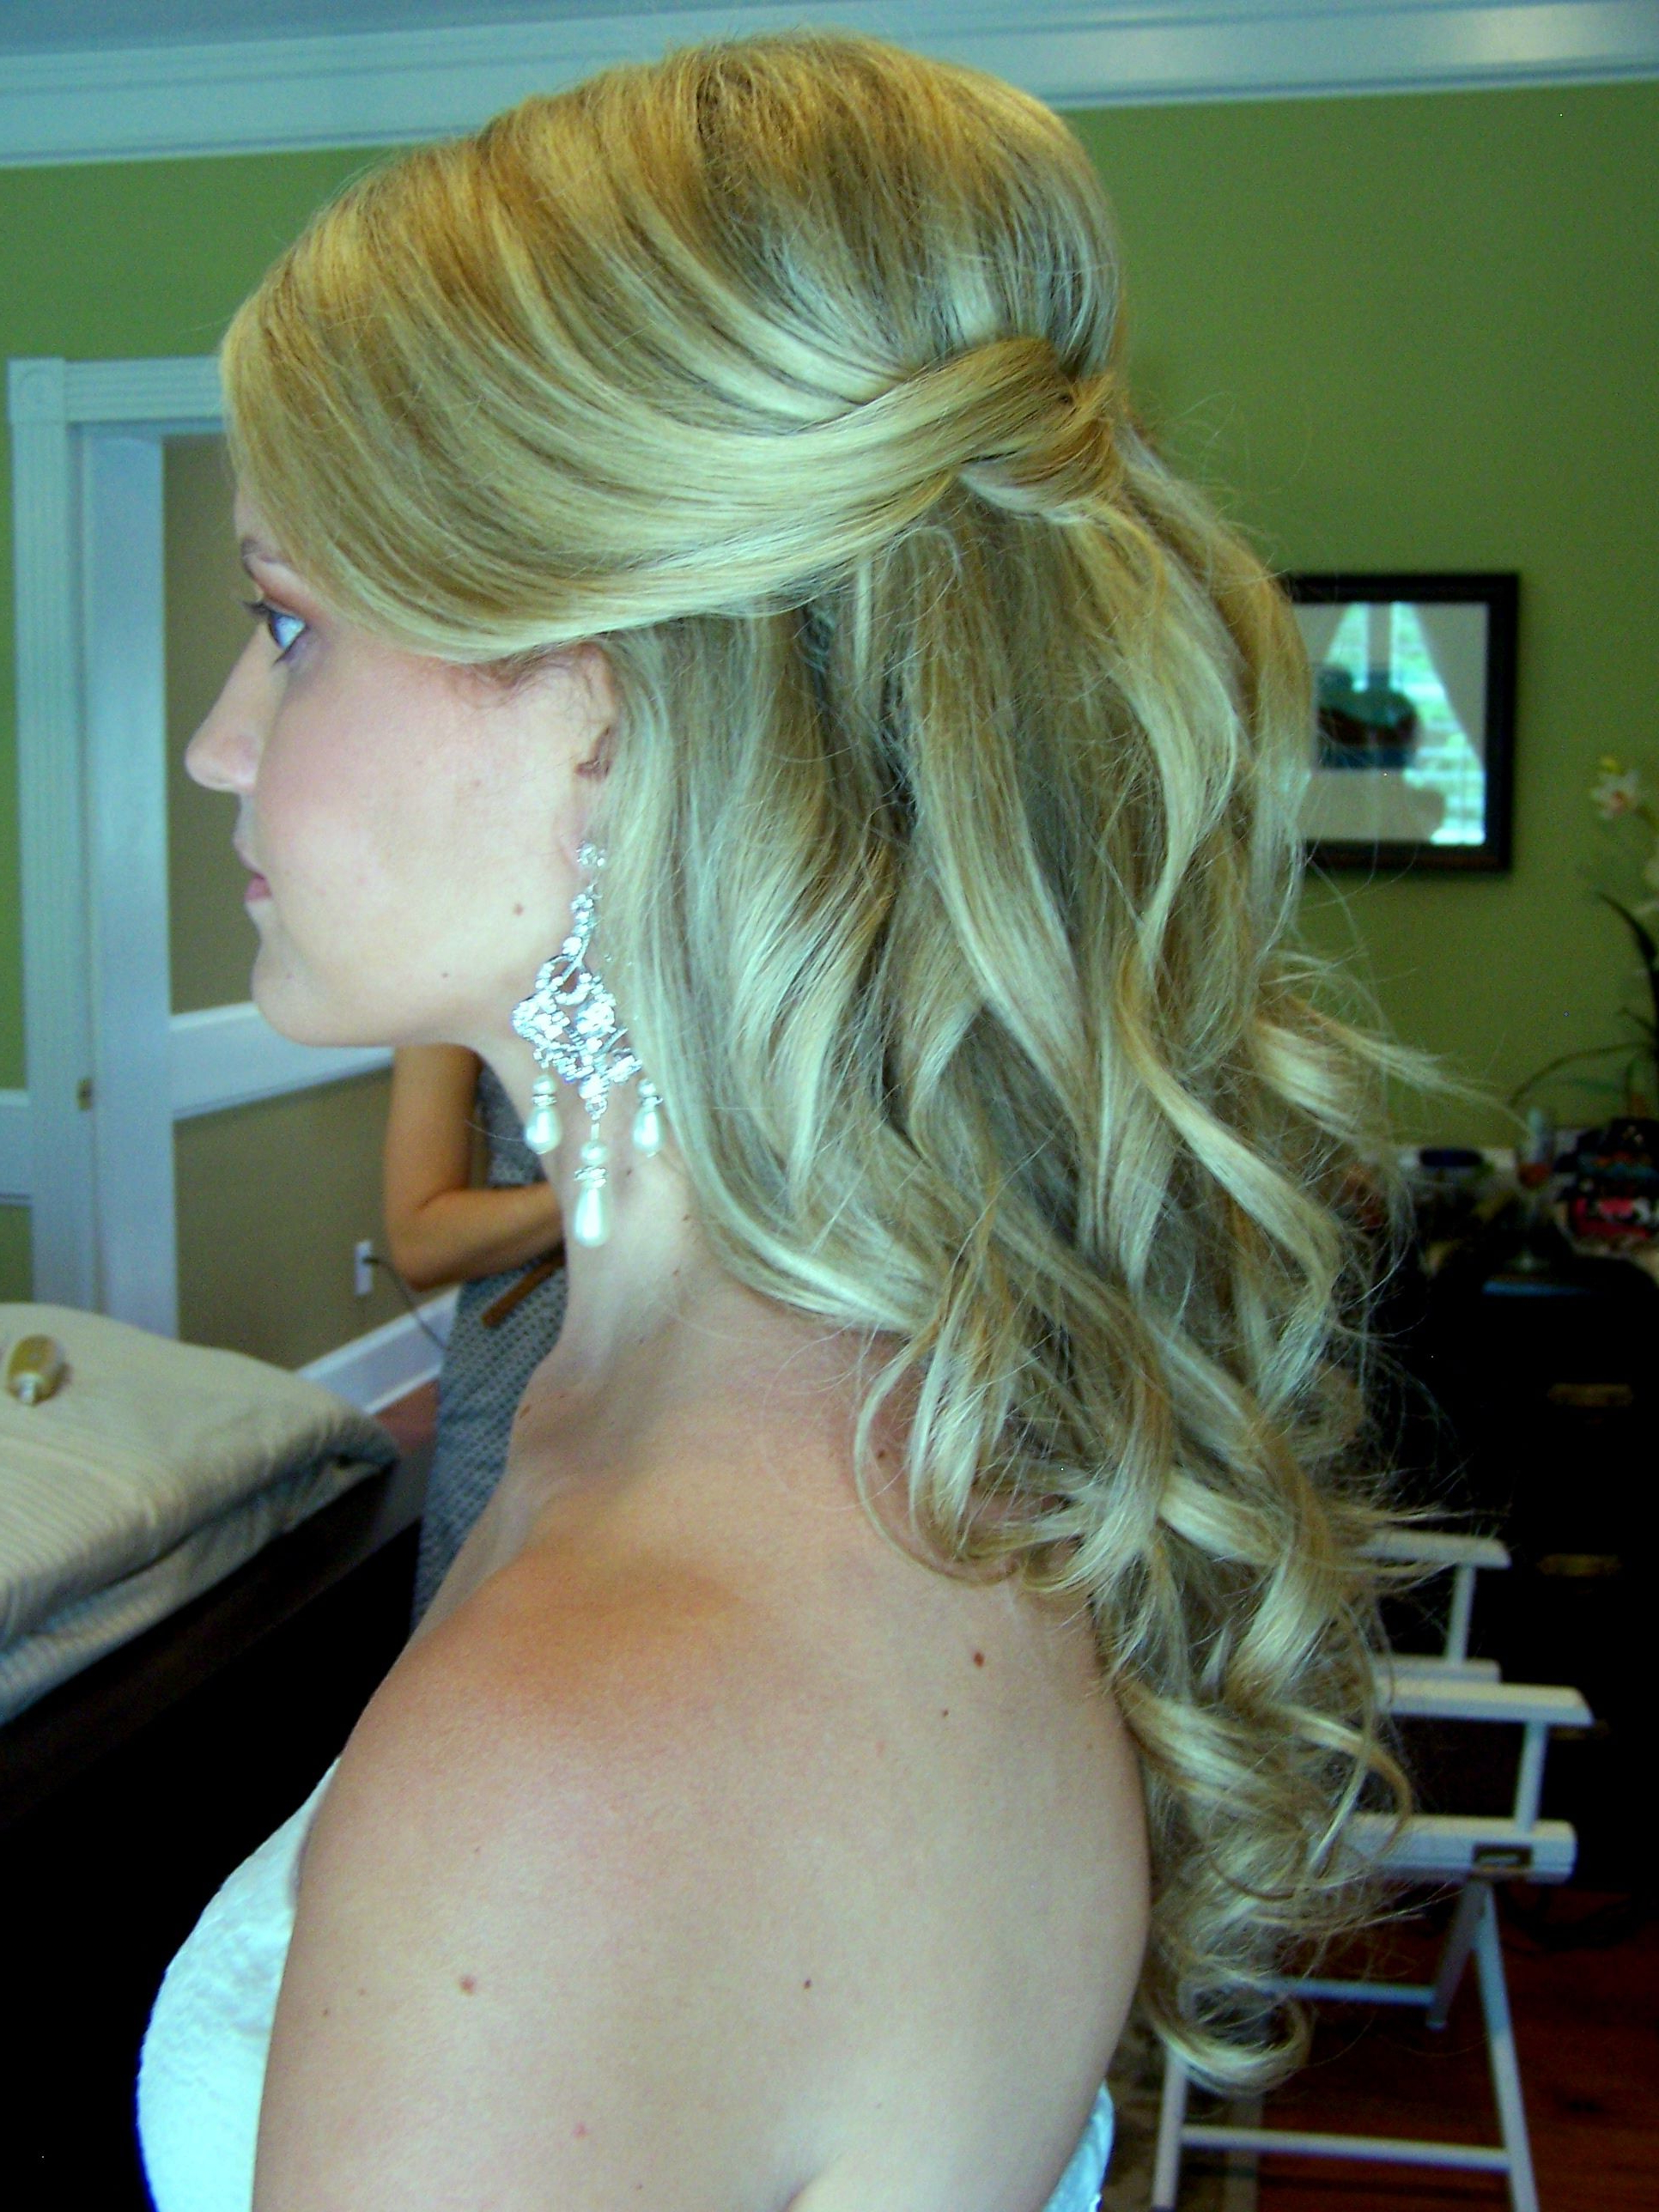 Ash And Intended For Well Known Bouffant Half Updo Wedding Hairstyles For Long Hair (View 3 of 20)